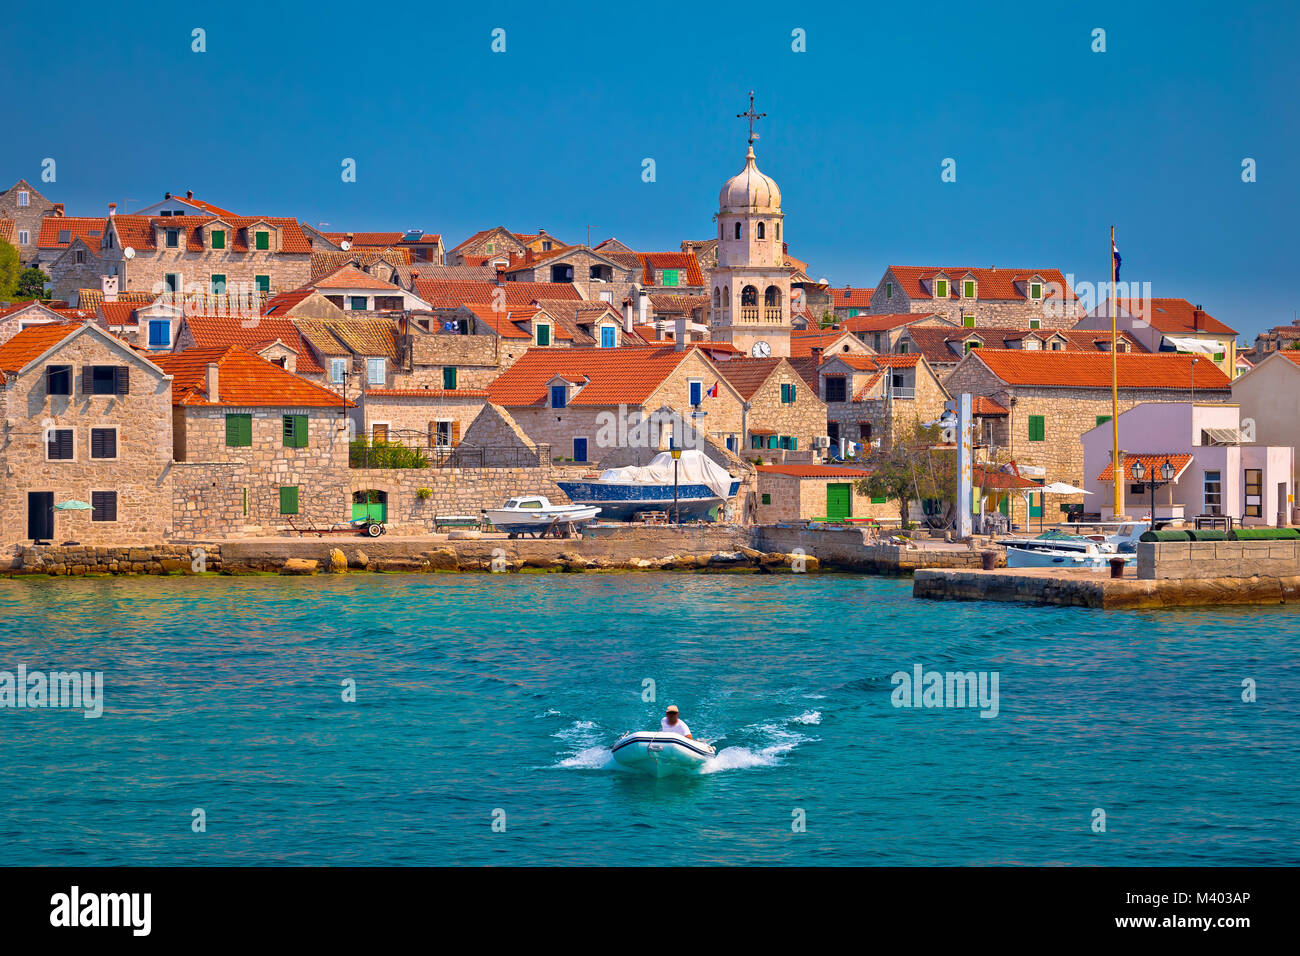 Prvic Sepurine waterfront and stone architecture view, Sibenik archipelago of Croatia - Stock Image